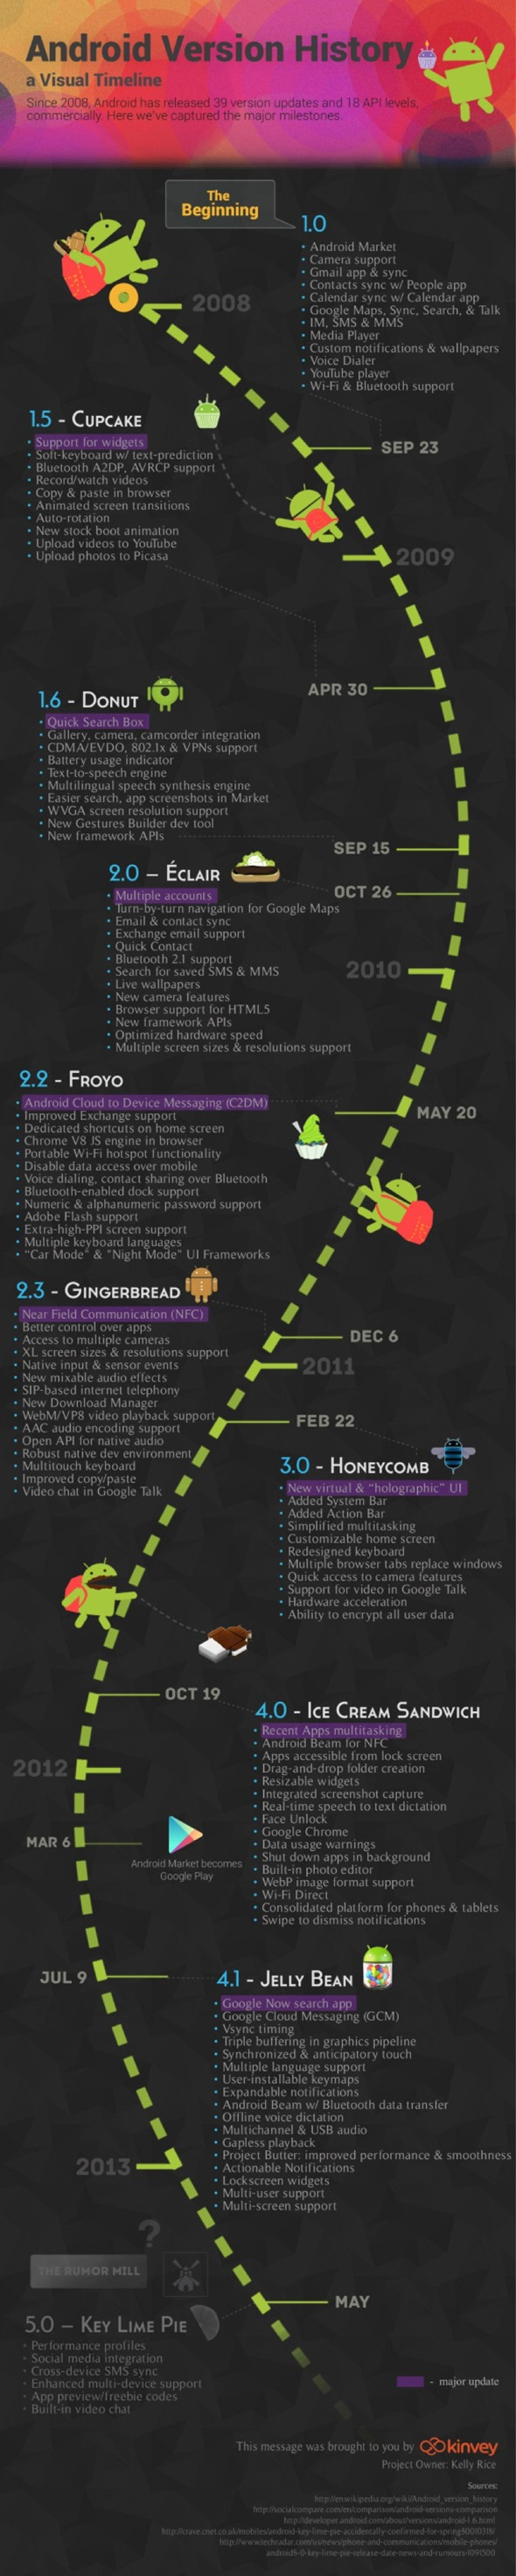 android_history_infographic